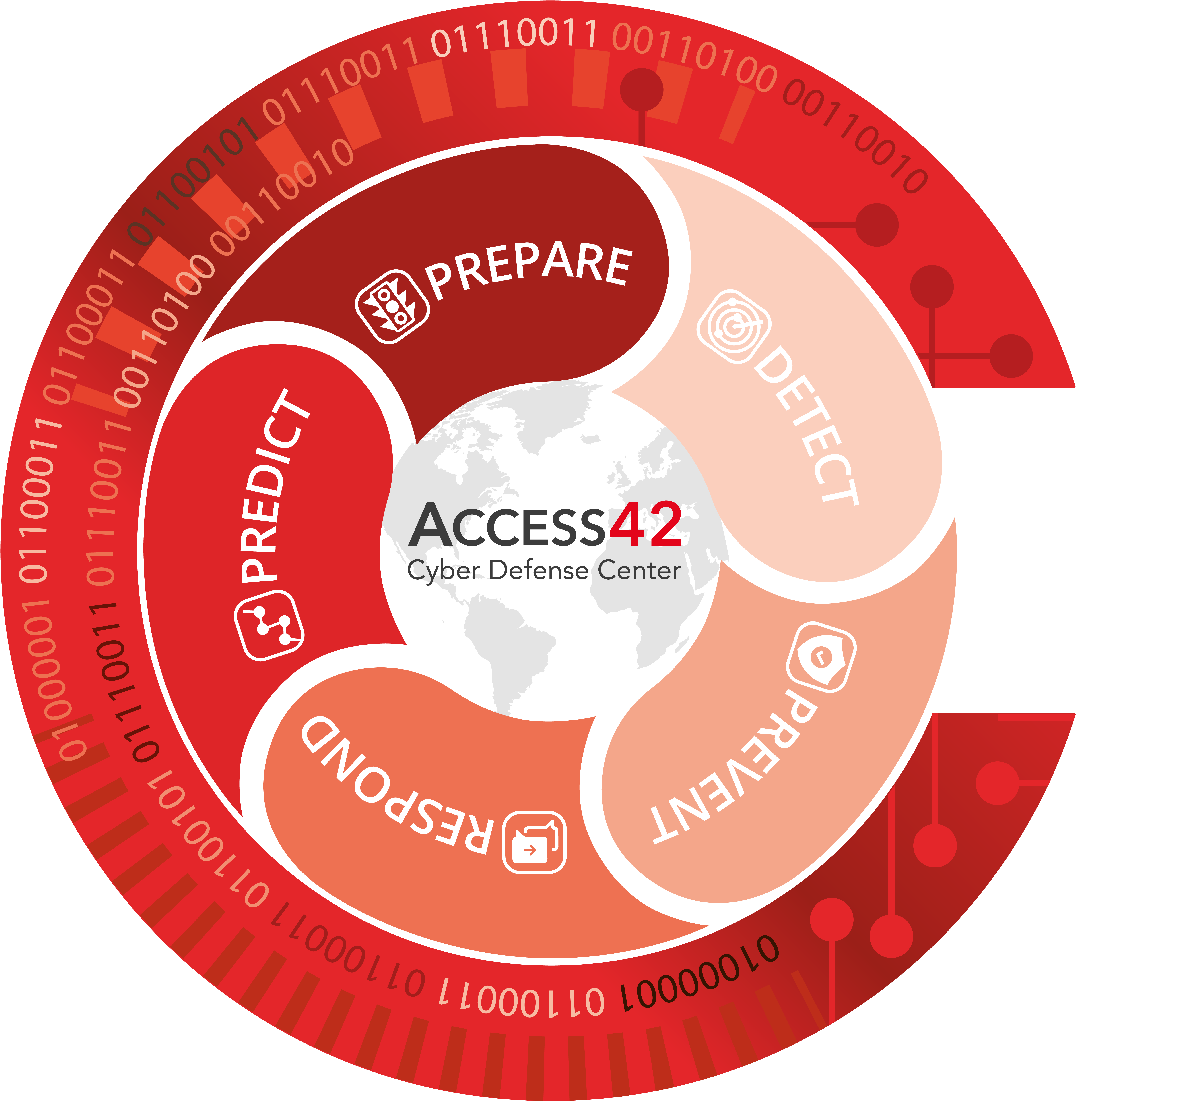 Access42 Cyber Defense Center